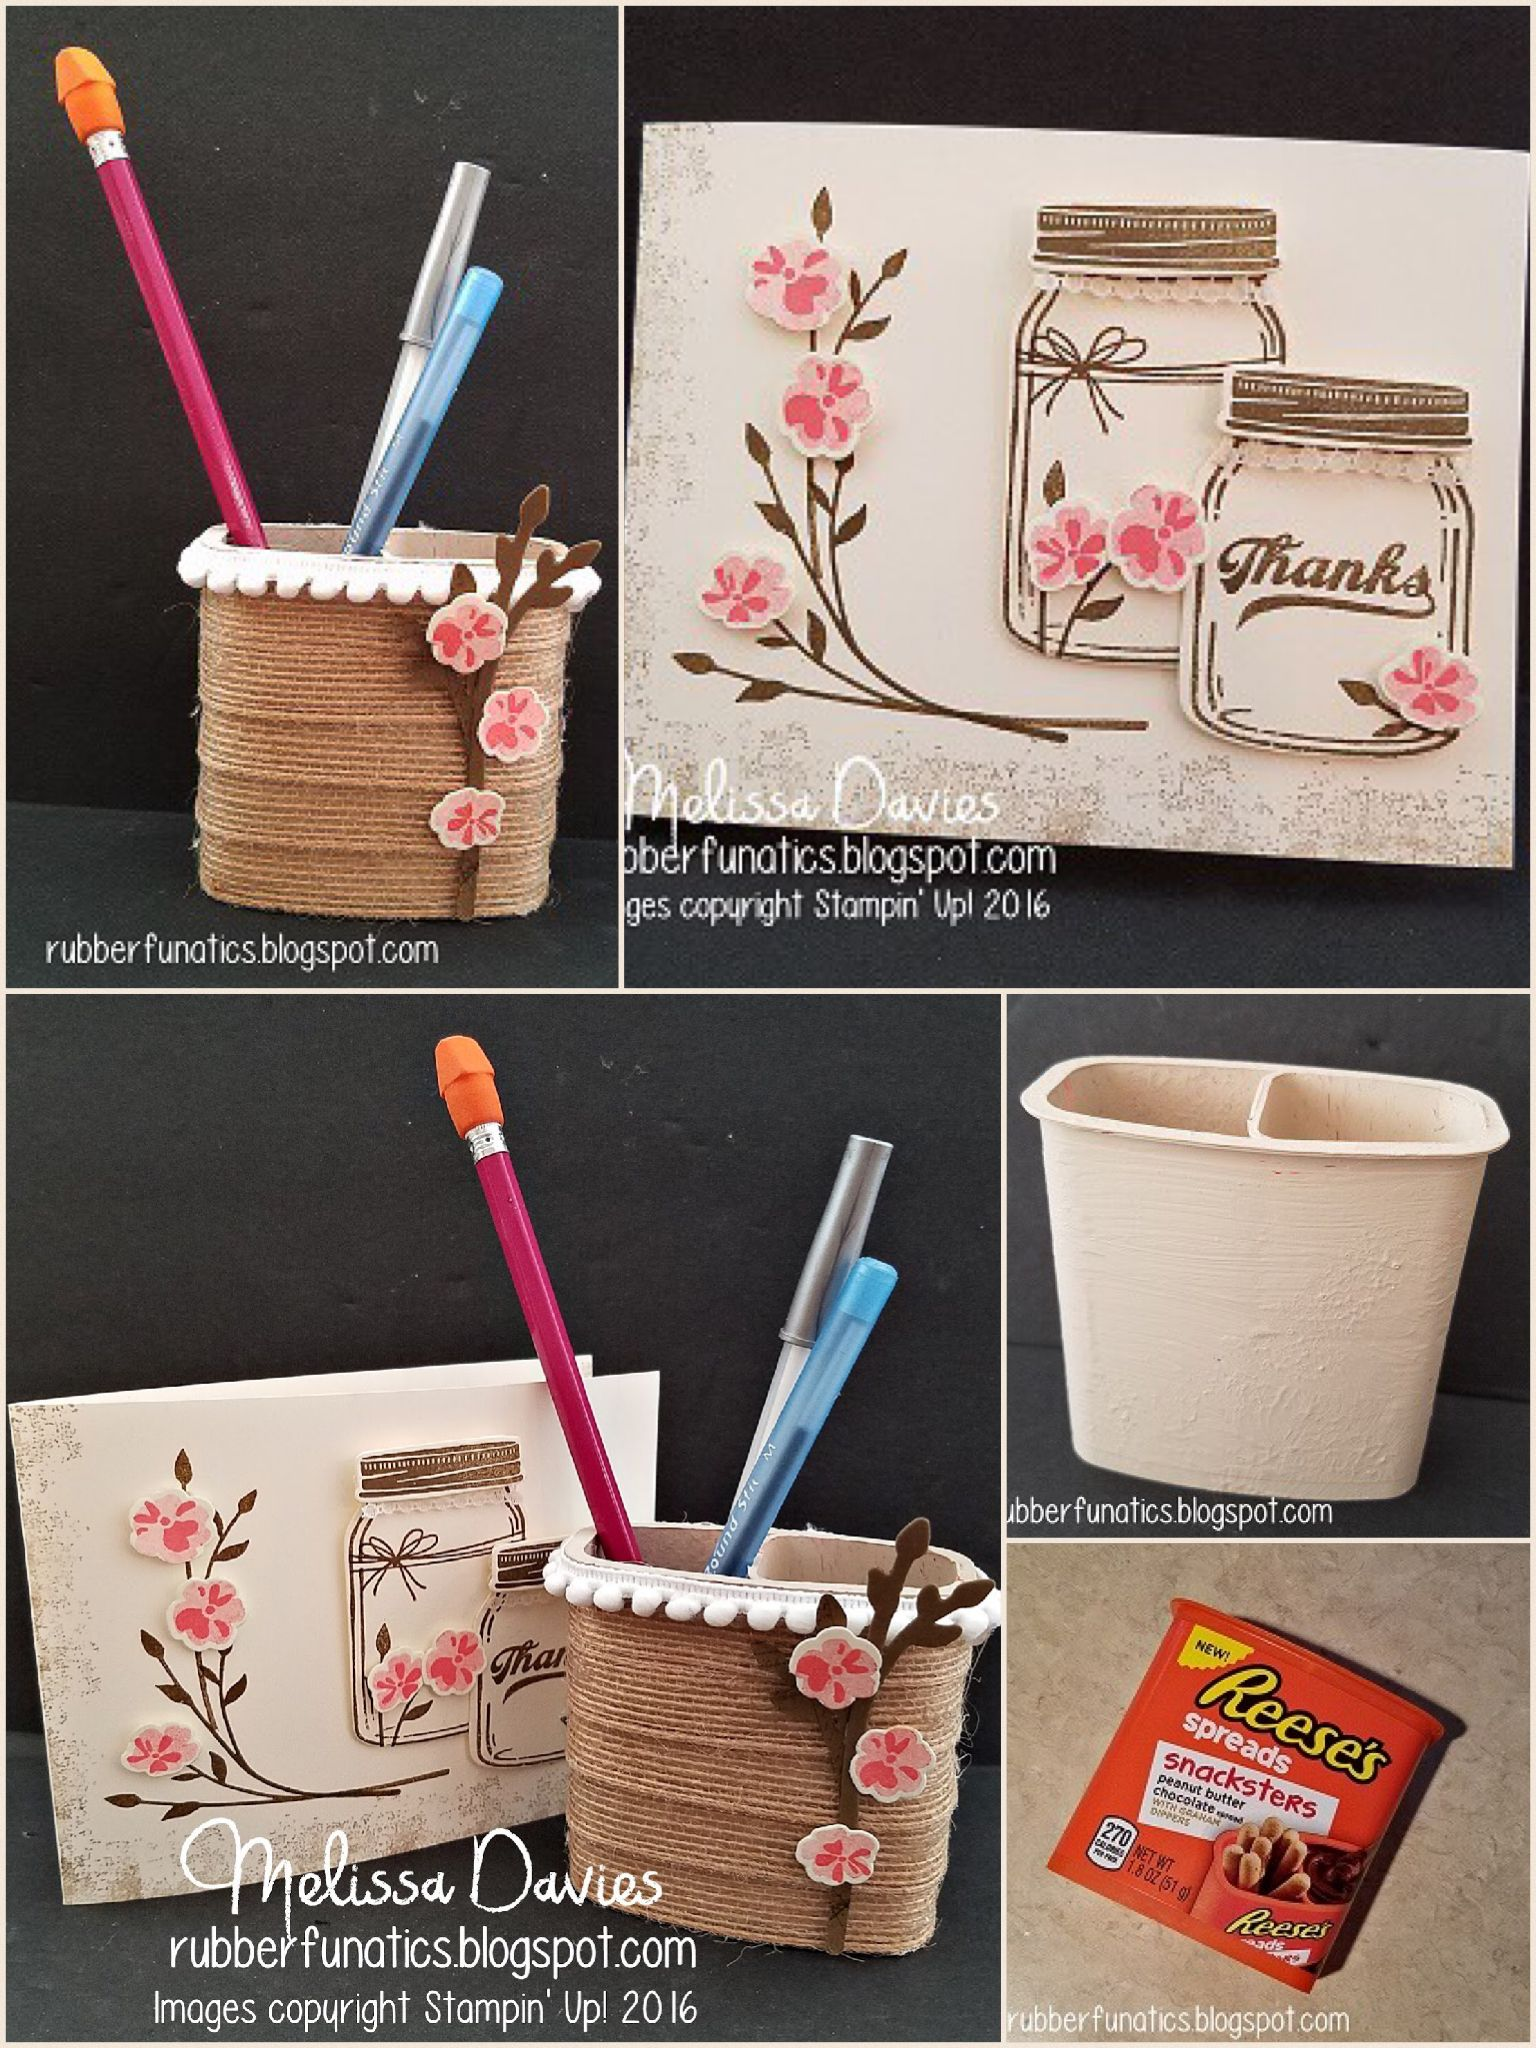 "Jar of Love burlap ribbon pencil cup, lace-trimmed mason jars | Stamps: Jar of Love, Timeless Textures; Ink: Soft Suede, Flirty Flamingo, Crumb Cake Paper: Very Vanilla, Soft Suede; Accessories: Whisper White Pom Pom trim, 5/8"" Burlap ribbon, Everyday Jars framelits, Very Vanilla 1/2"" Lace trim; Non-SU!pplies: Antique White acrylic paint, Snacksters container, hot glue gun 